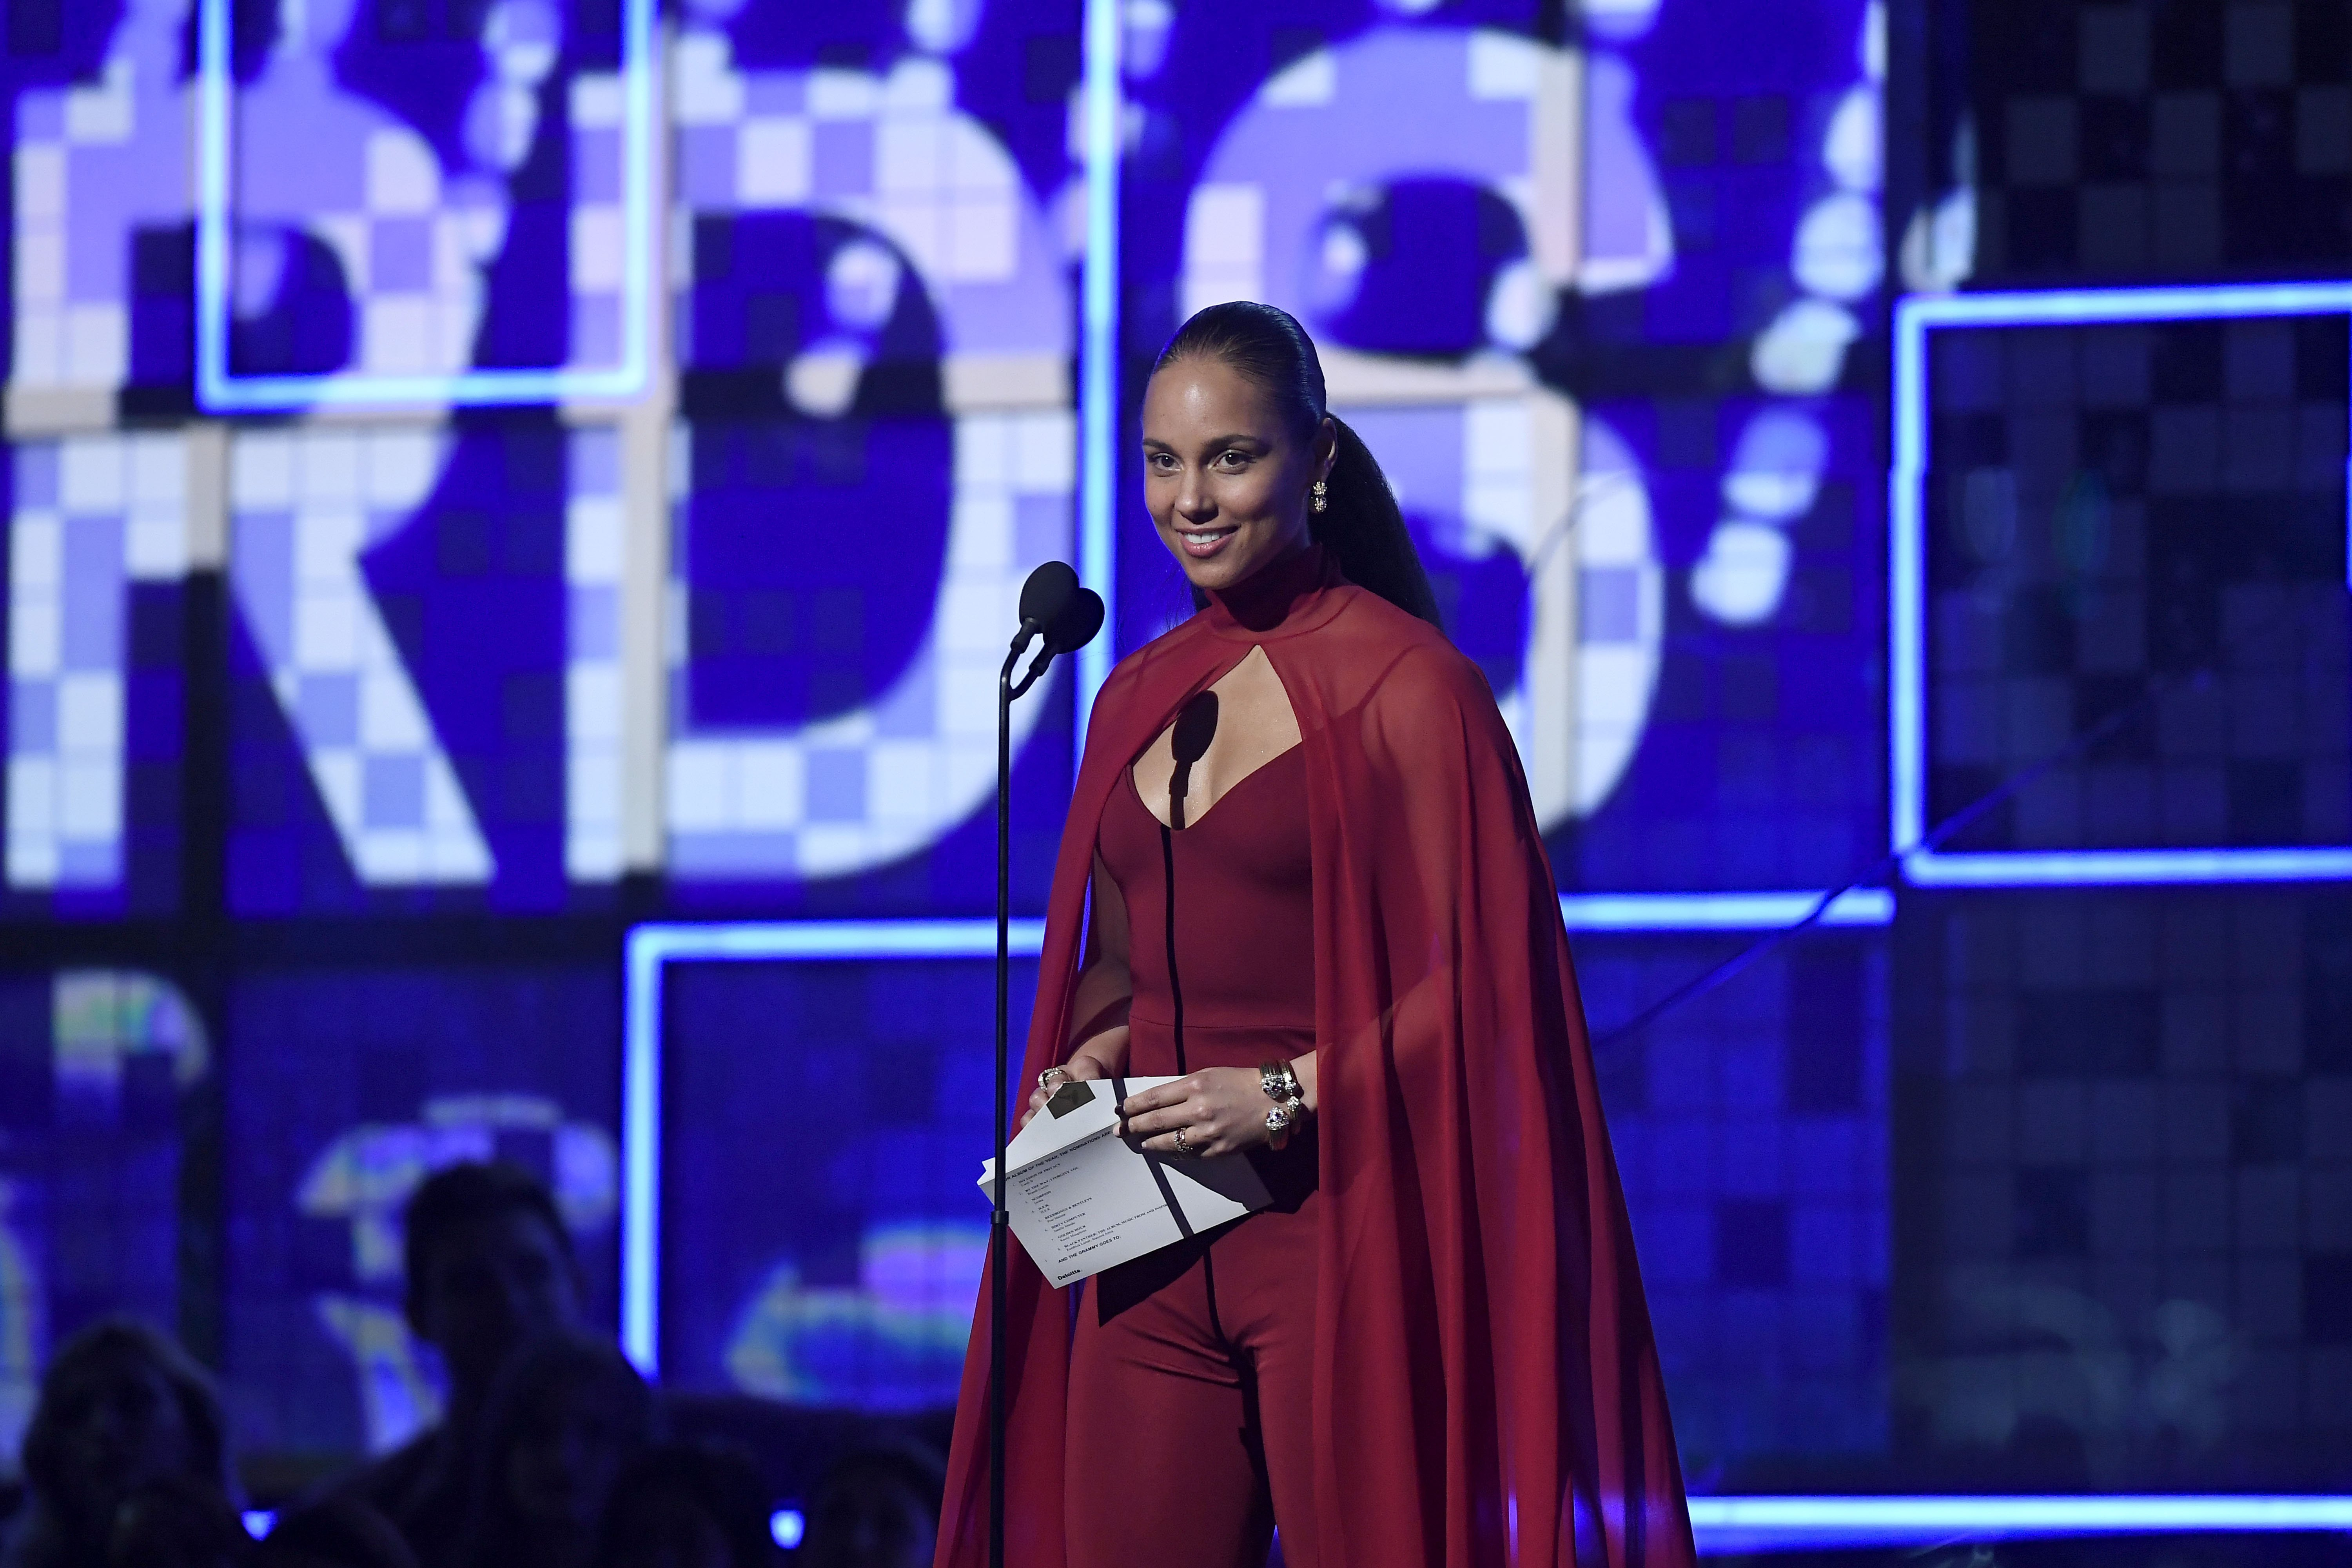 Host Alicia Keys speaks onstage during the 61st Annual GRAMMY Awards at Staples Center on February 10, 2019, in Los Angeles, California. | Source: Getty Images.